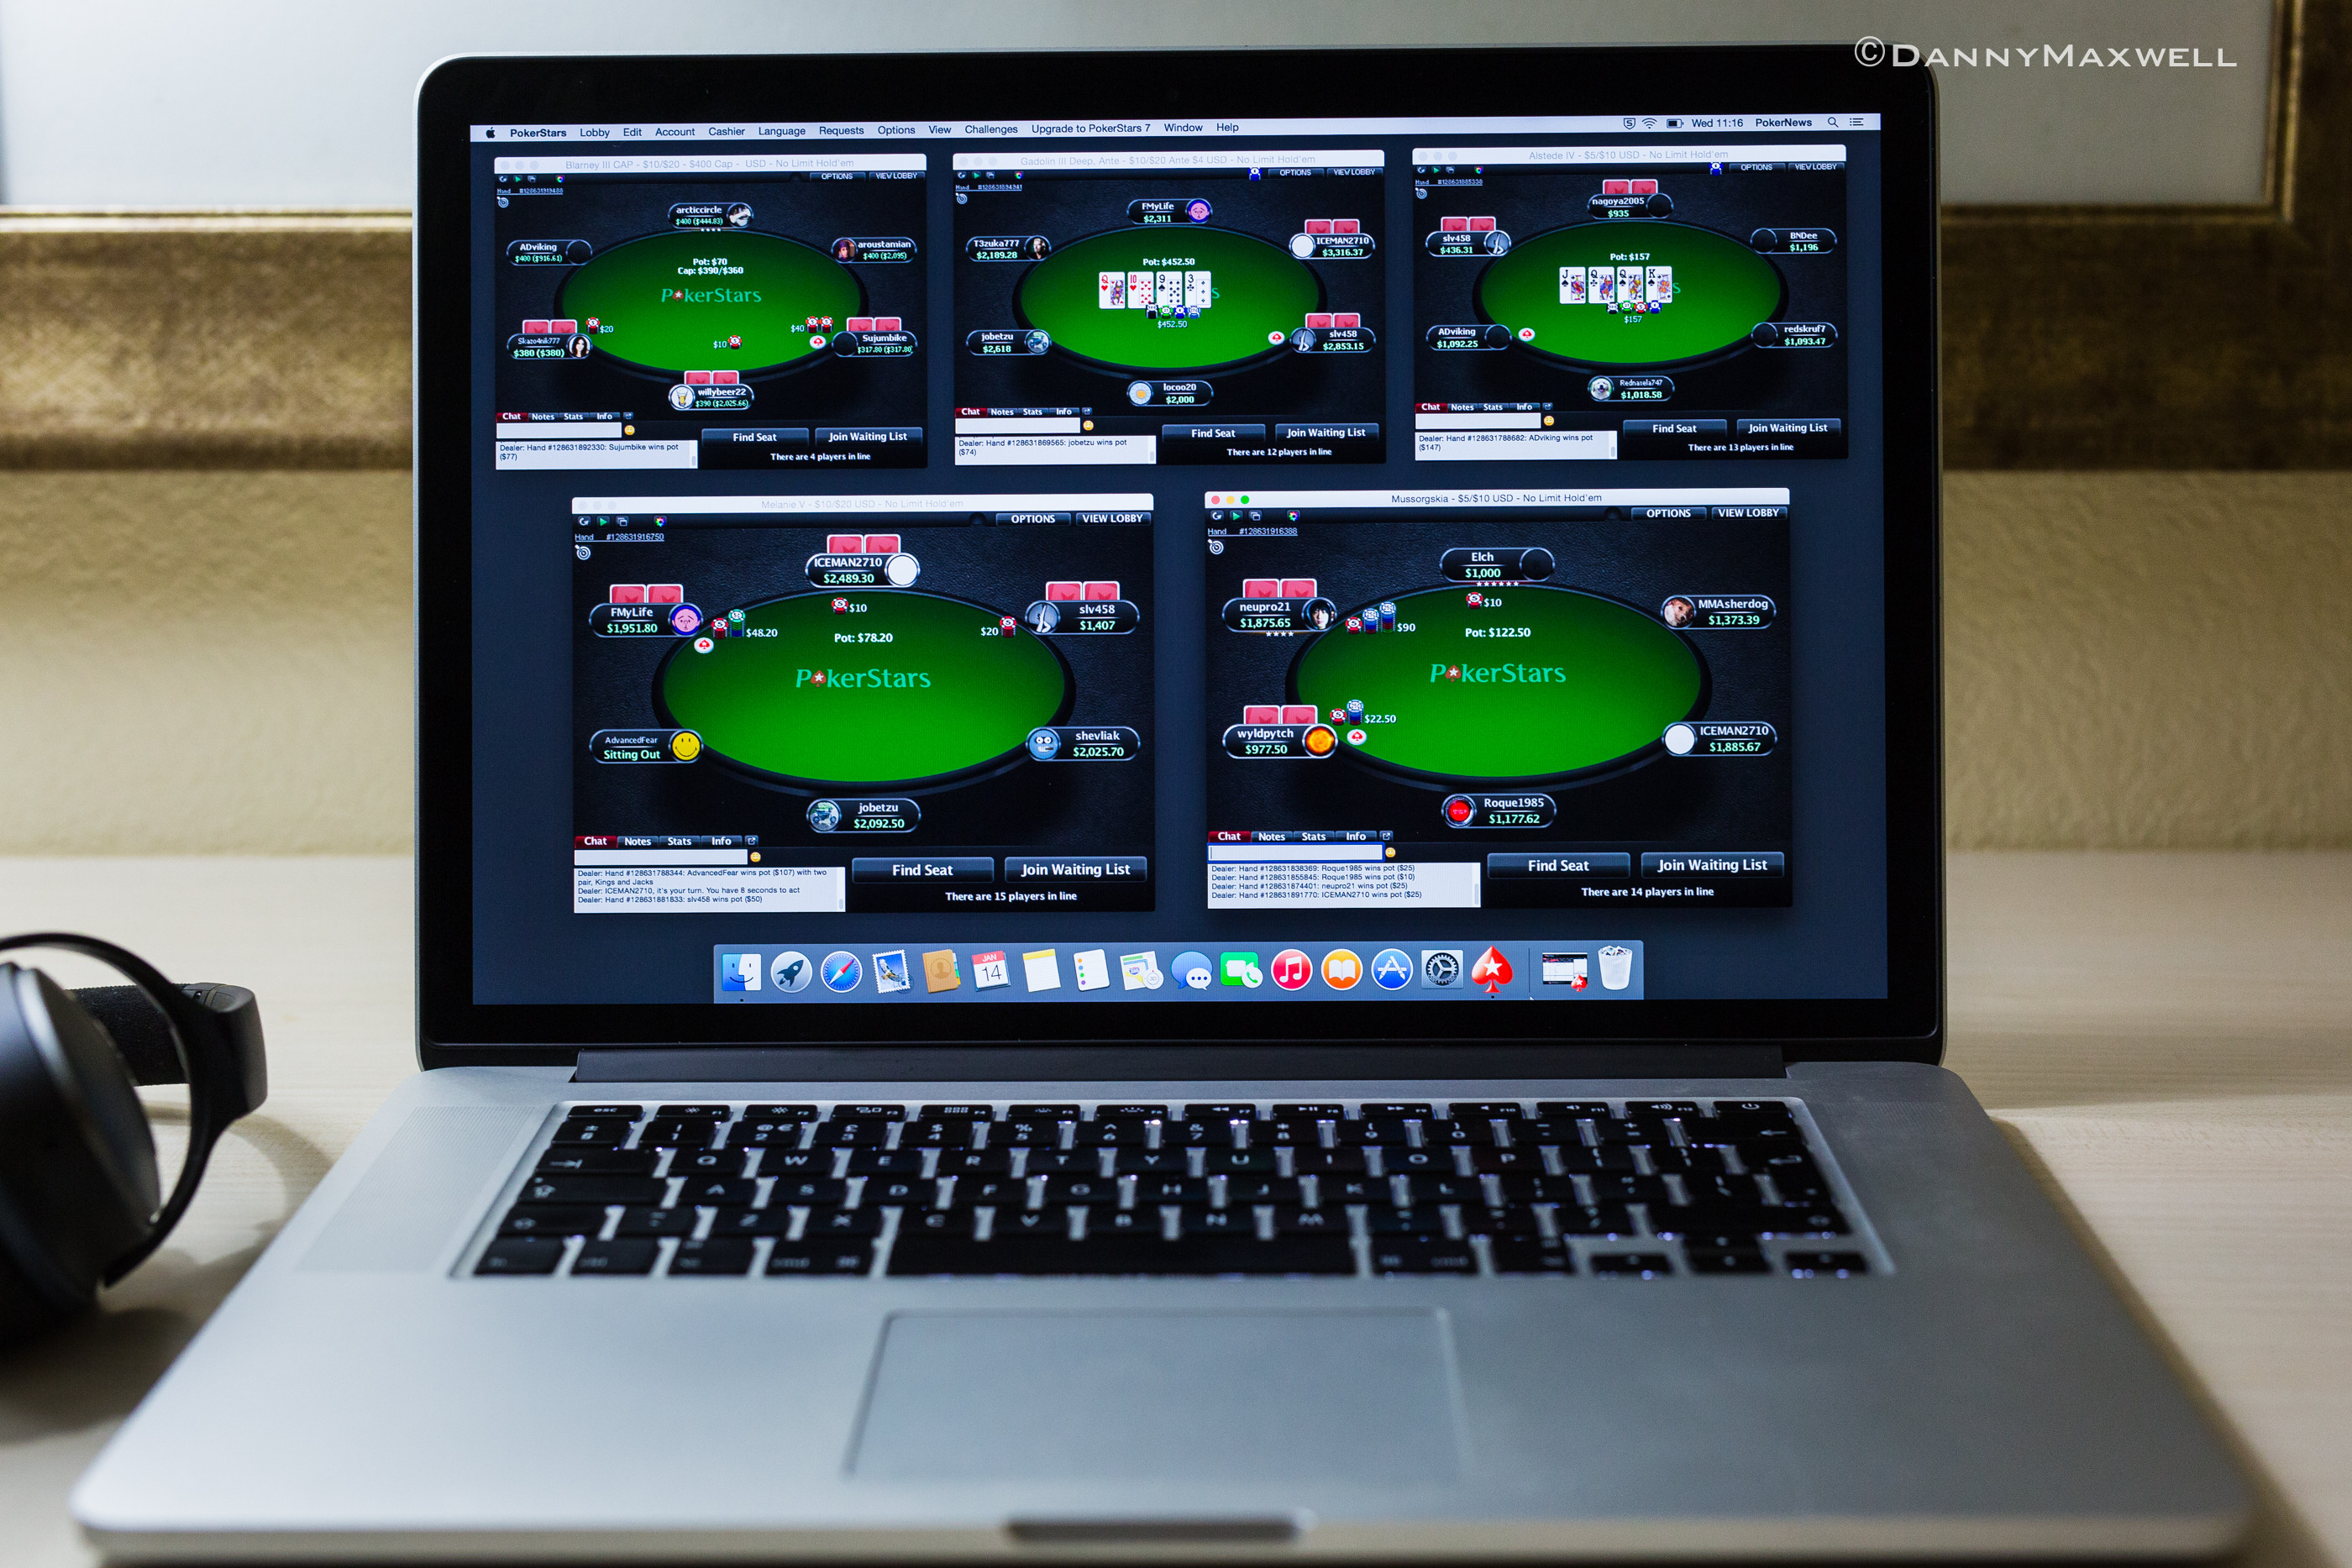 Professional Online Poker Player